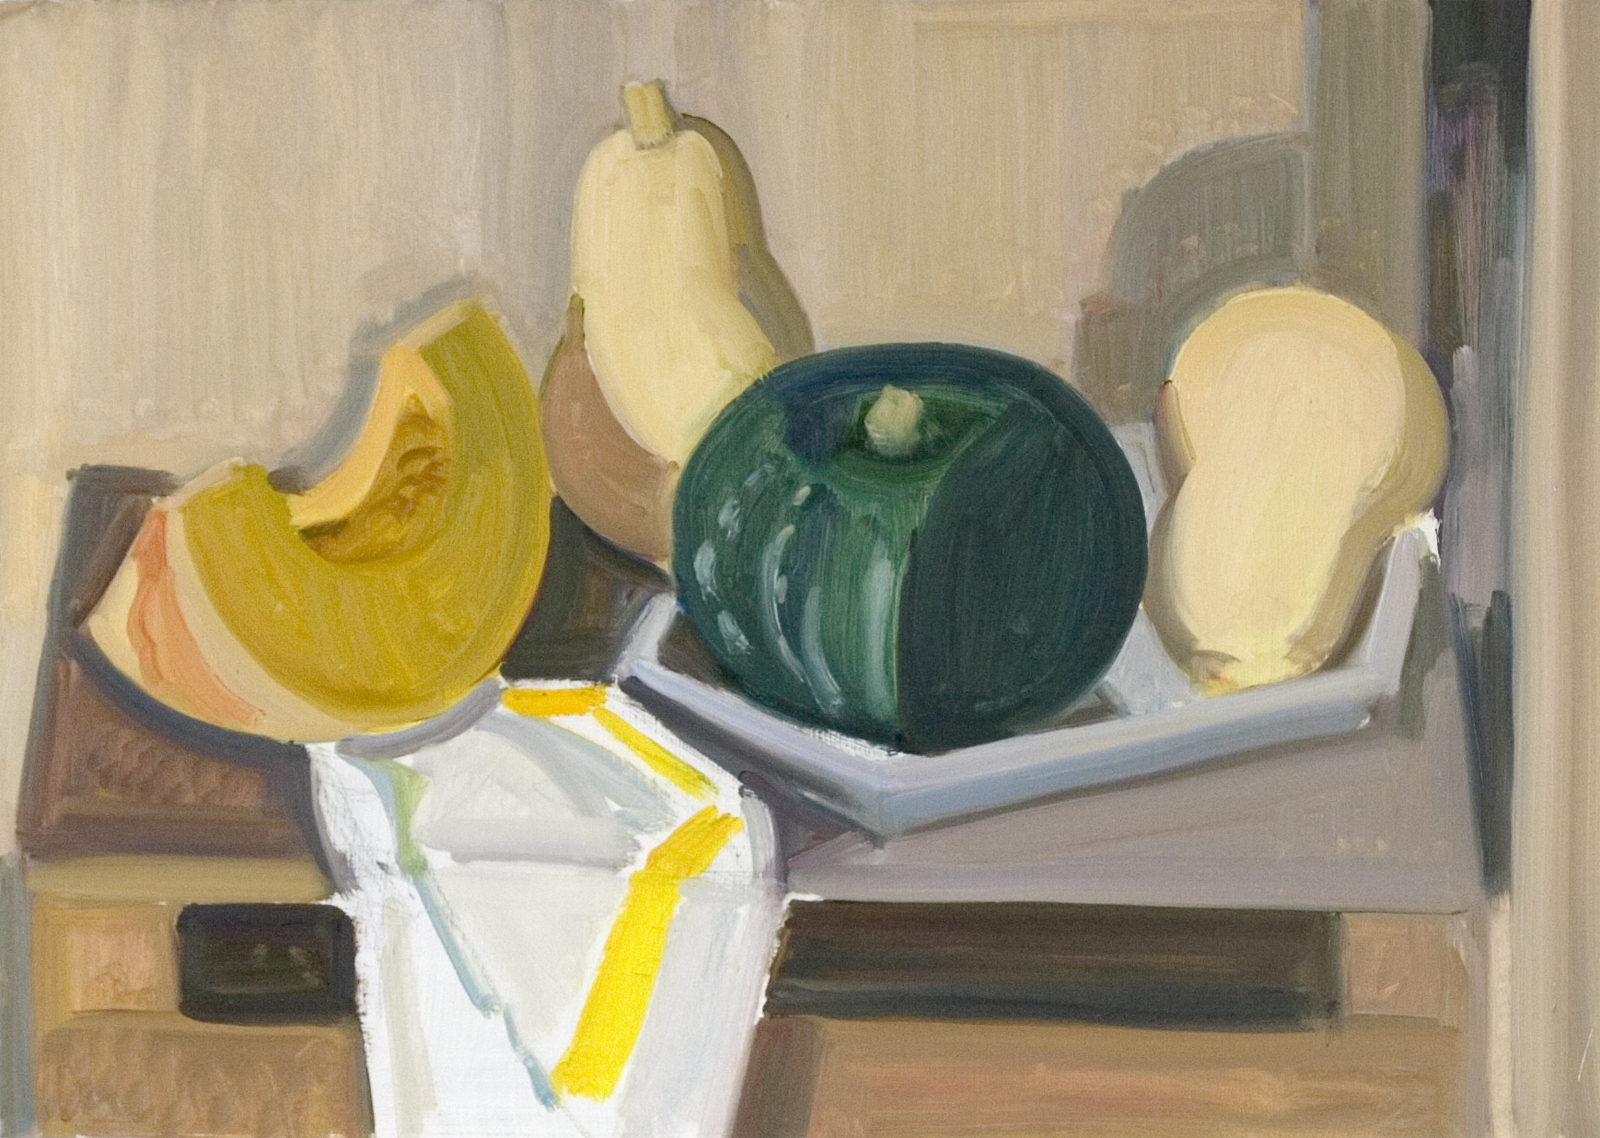 Squash with Wooden Box and Napkin, oil on panel